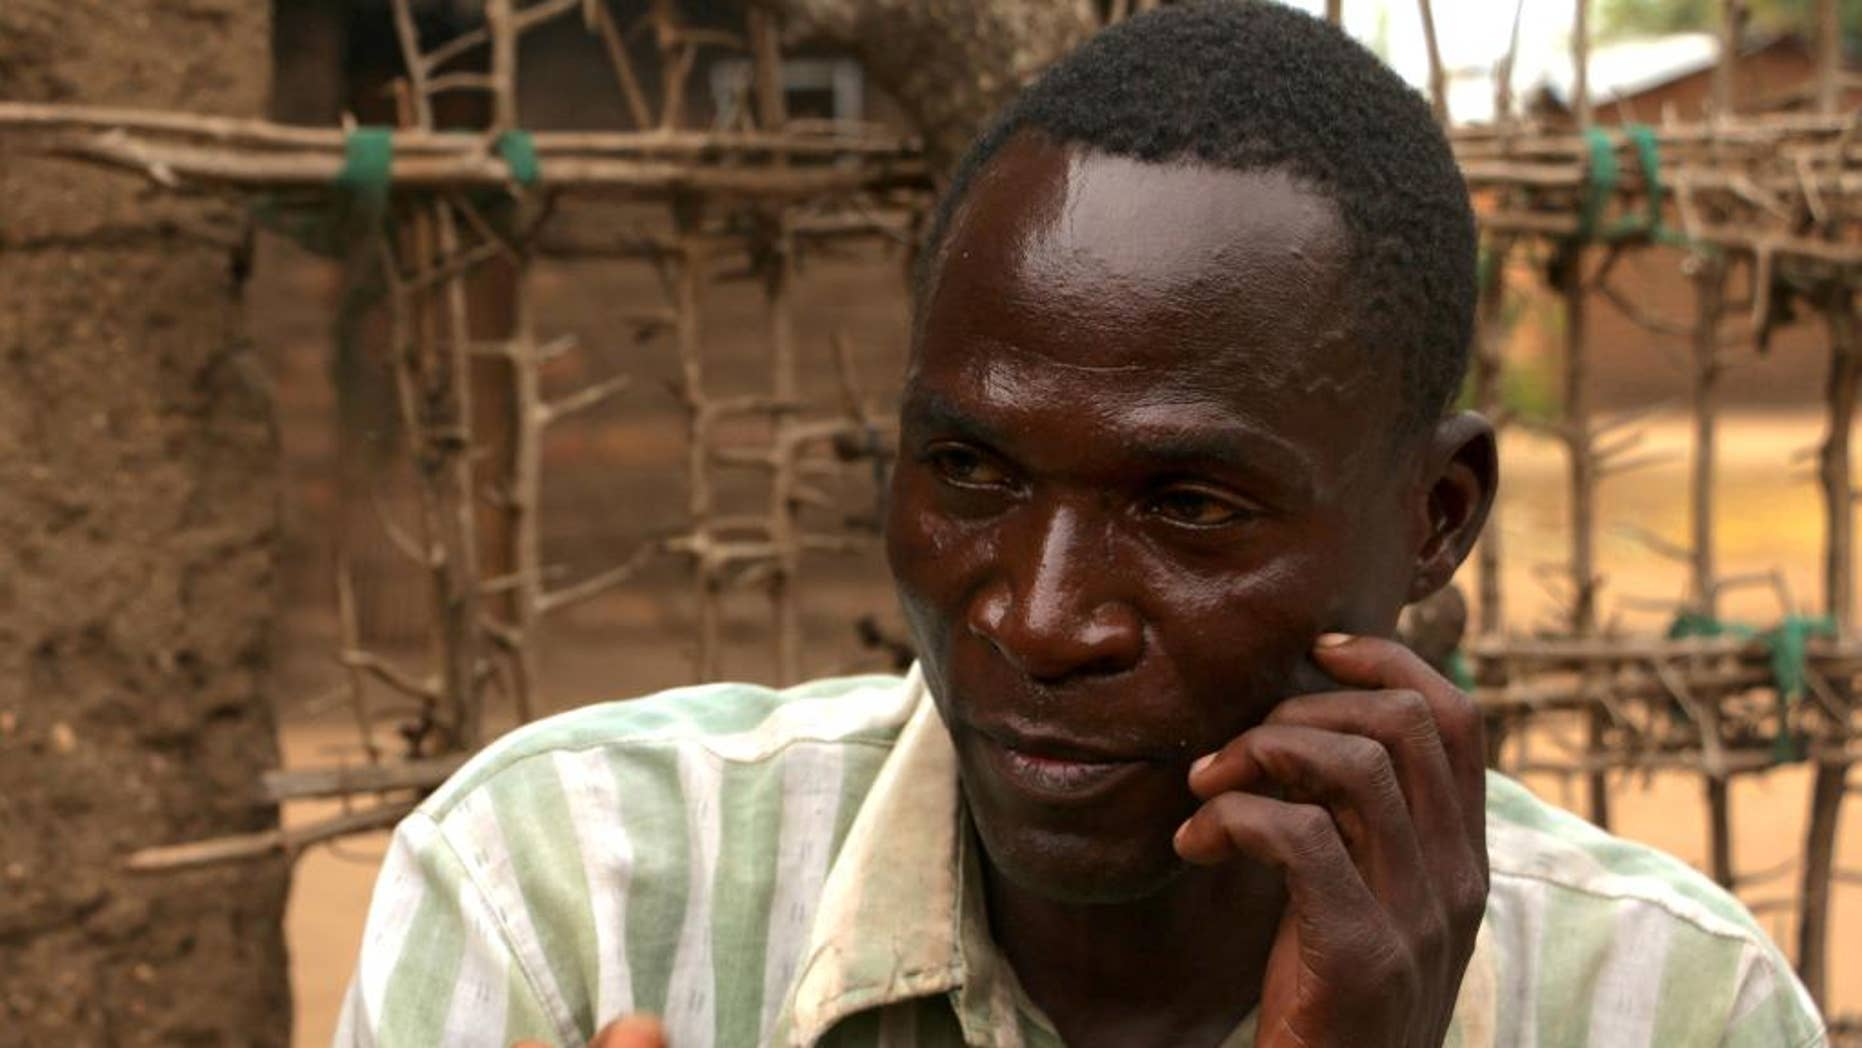 In this photo taken Thursday, June 30, 2016, Eric Aniva is photographed near Blantyre, Malawi. Malawian police on Tuesday July 26, 2016 have arrested Aniva who said he was hired by families to have sex with more than 100 young women, including children, in what was described as ritual cleansing. The country's president ordered the man's arrest after he told international media about his actions and said he is HIV-positive. (AP Photo/Eldson Chagara)